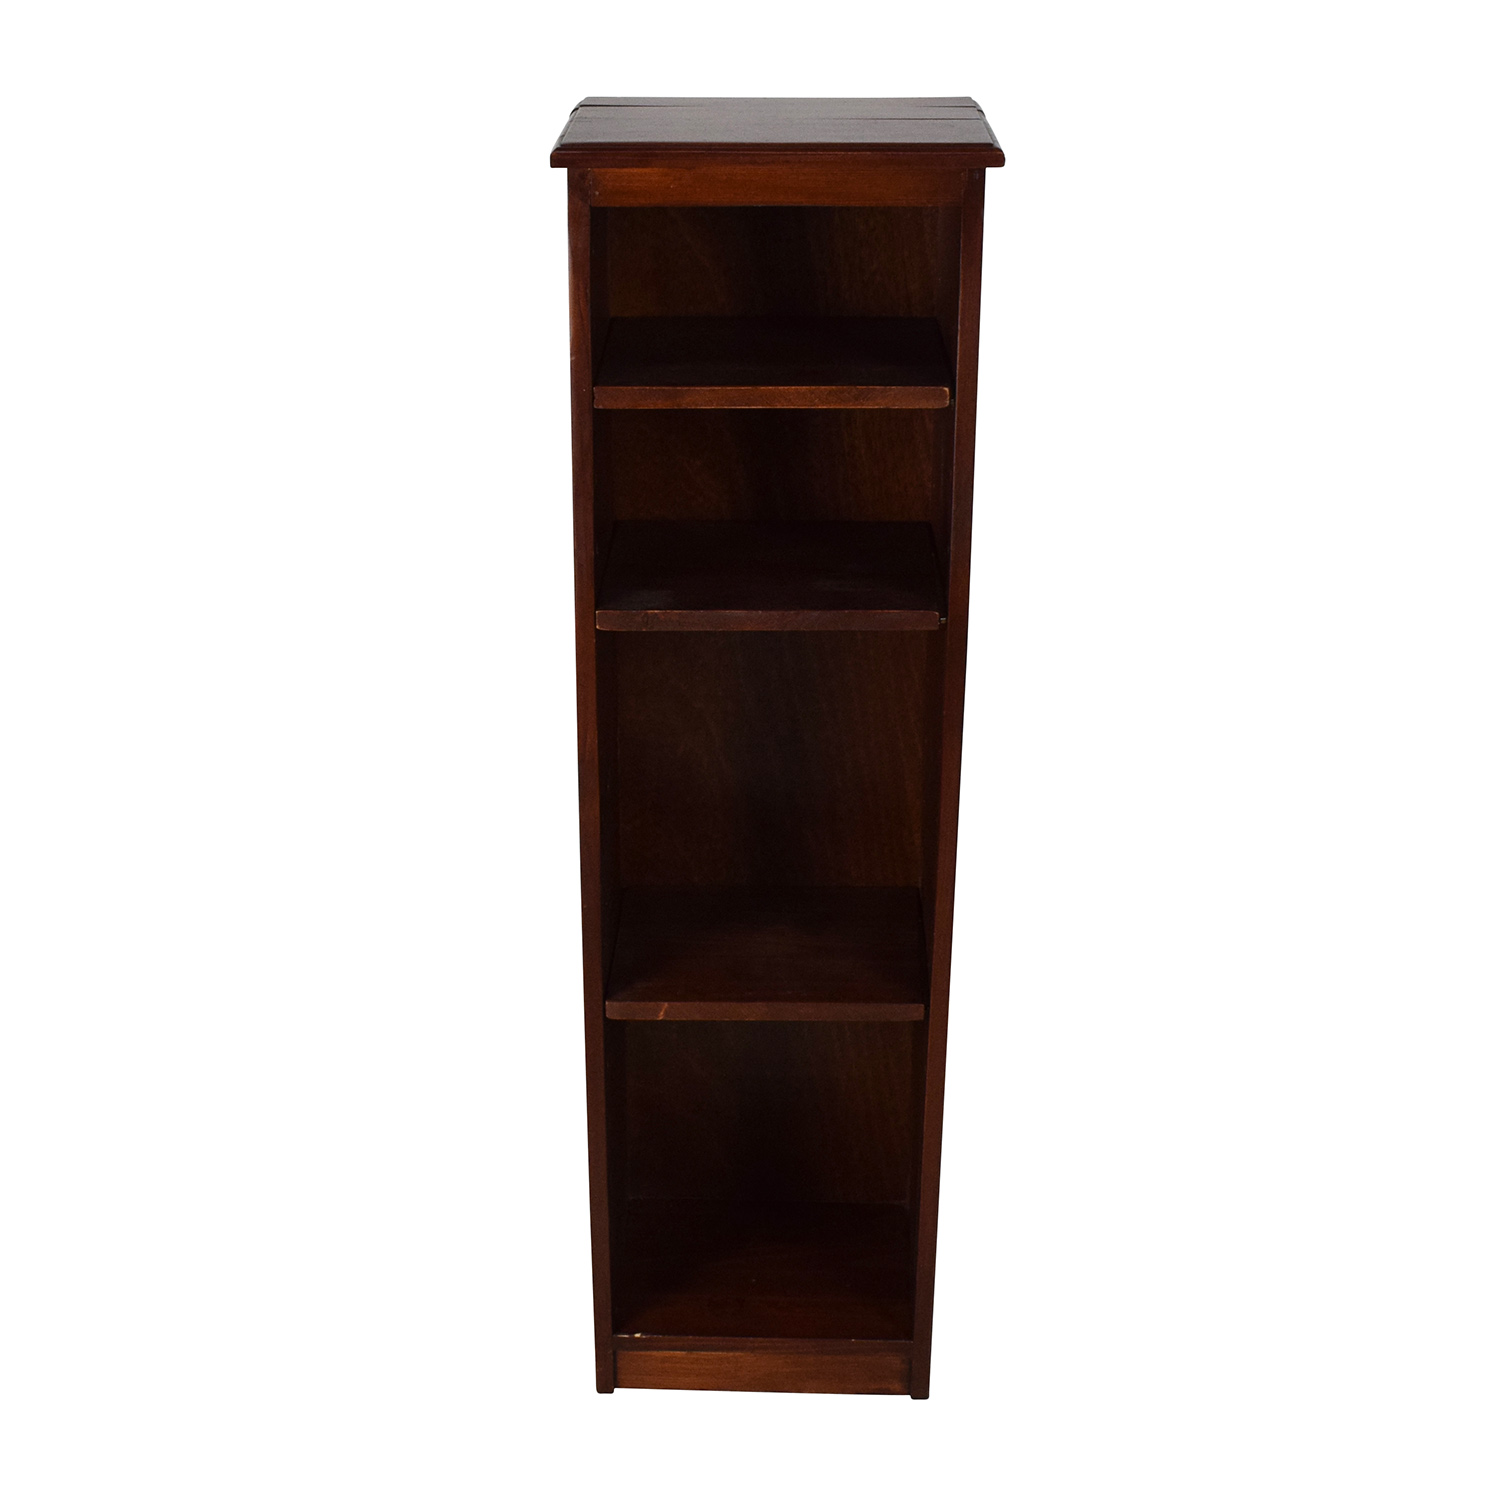 77 Off Gothic Furniture Gothic Furniture Small Wooden